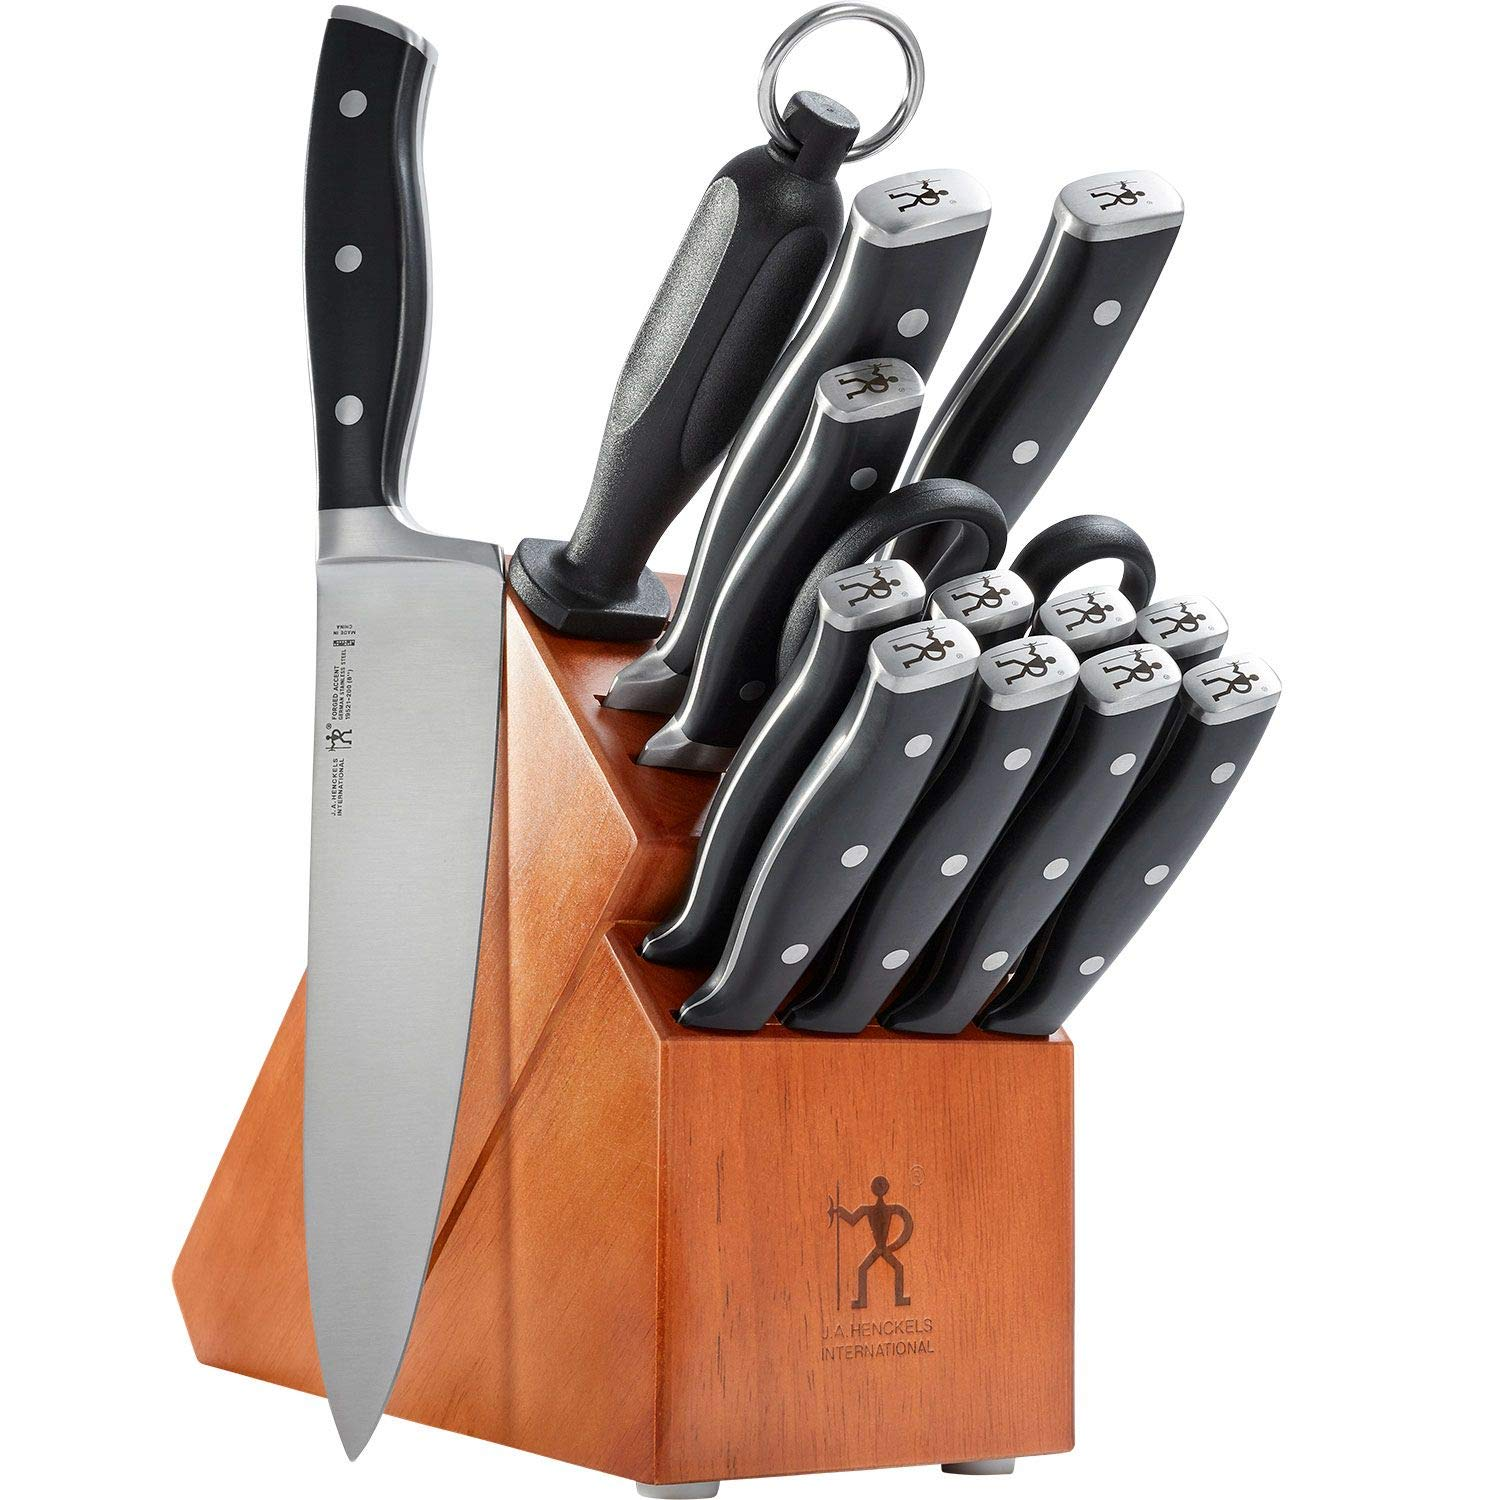 Zwilling J.A. Henckels 15-Piece Knife Set | High-Carbon German Stainless Steel Cutlery Set with Block and Sharpener by ZWILLING J.A. Henckels (Image #1)